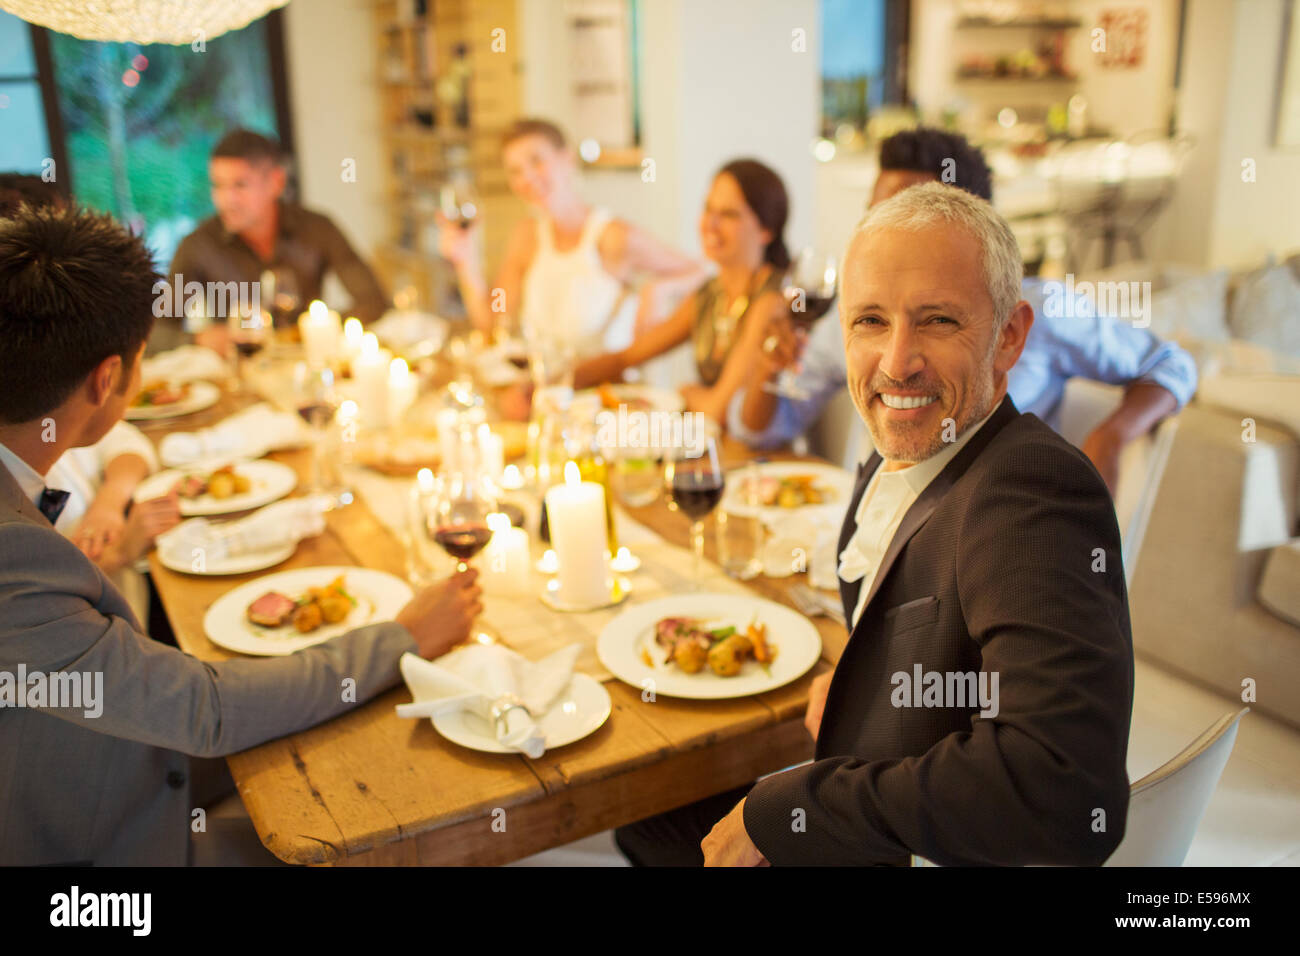 Man smiling at dinner party - Stock Image